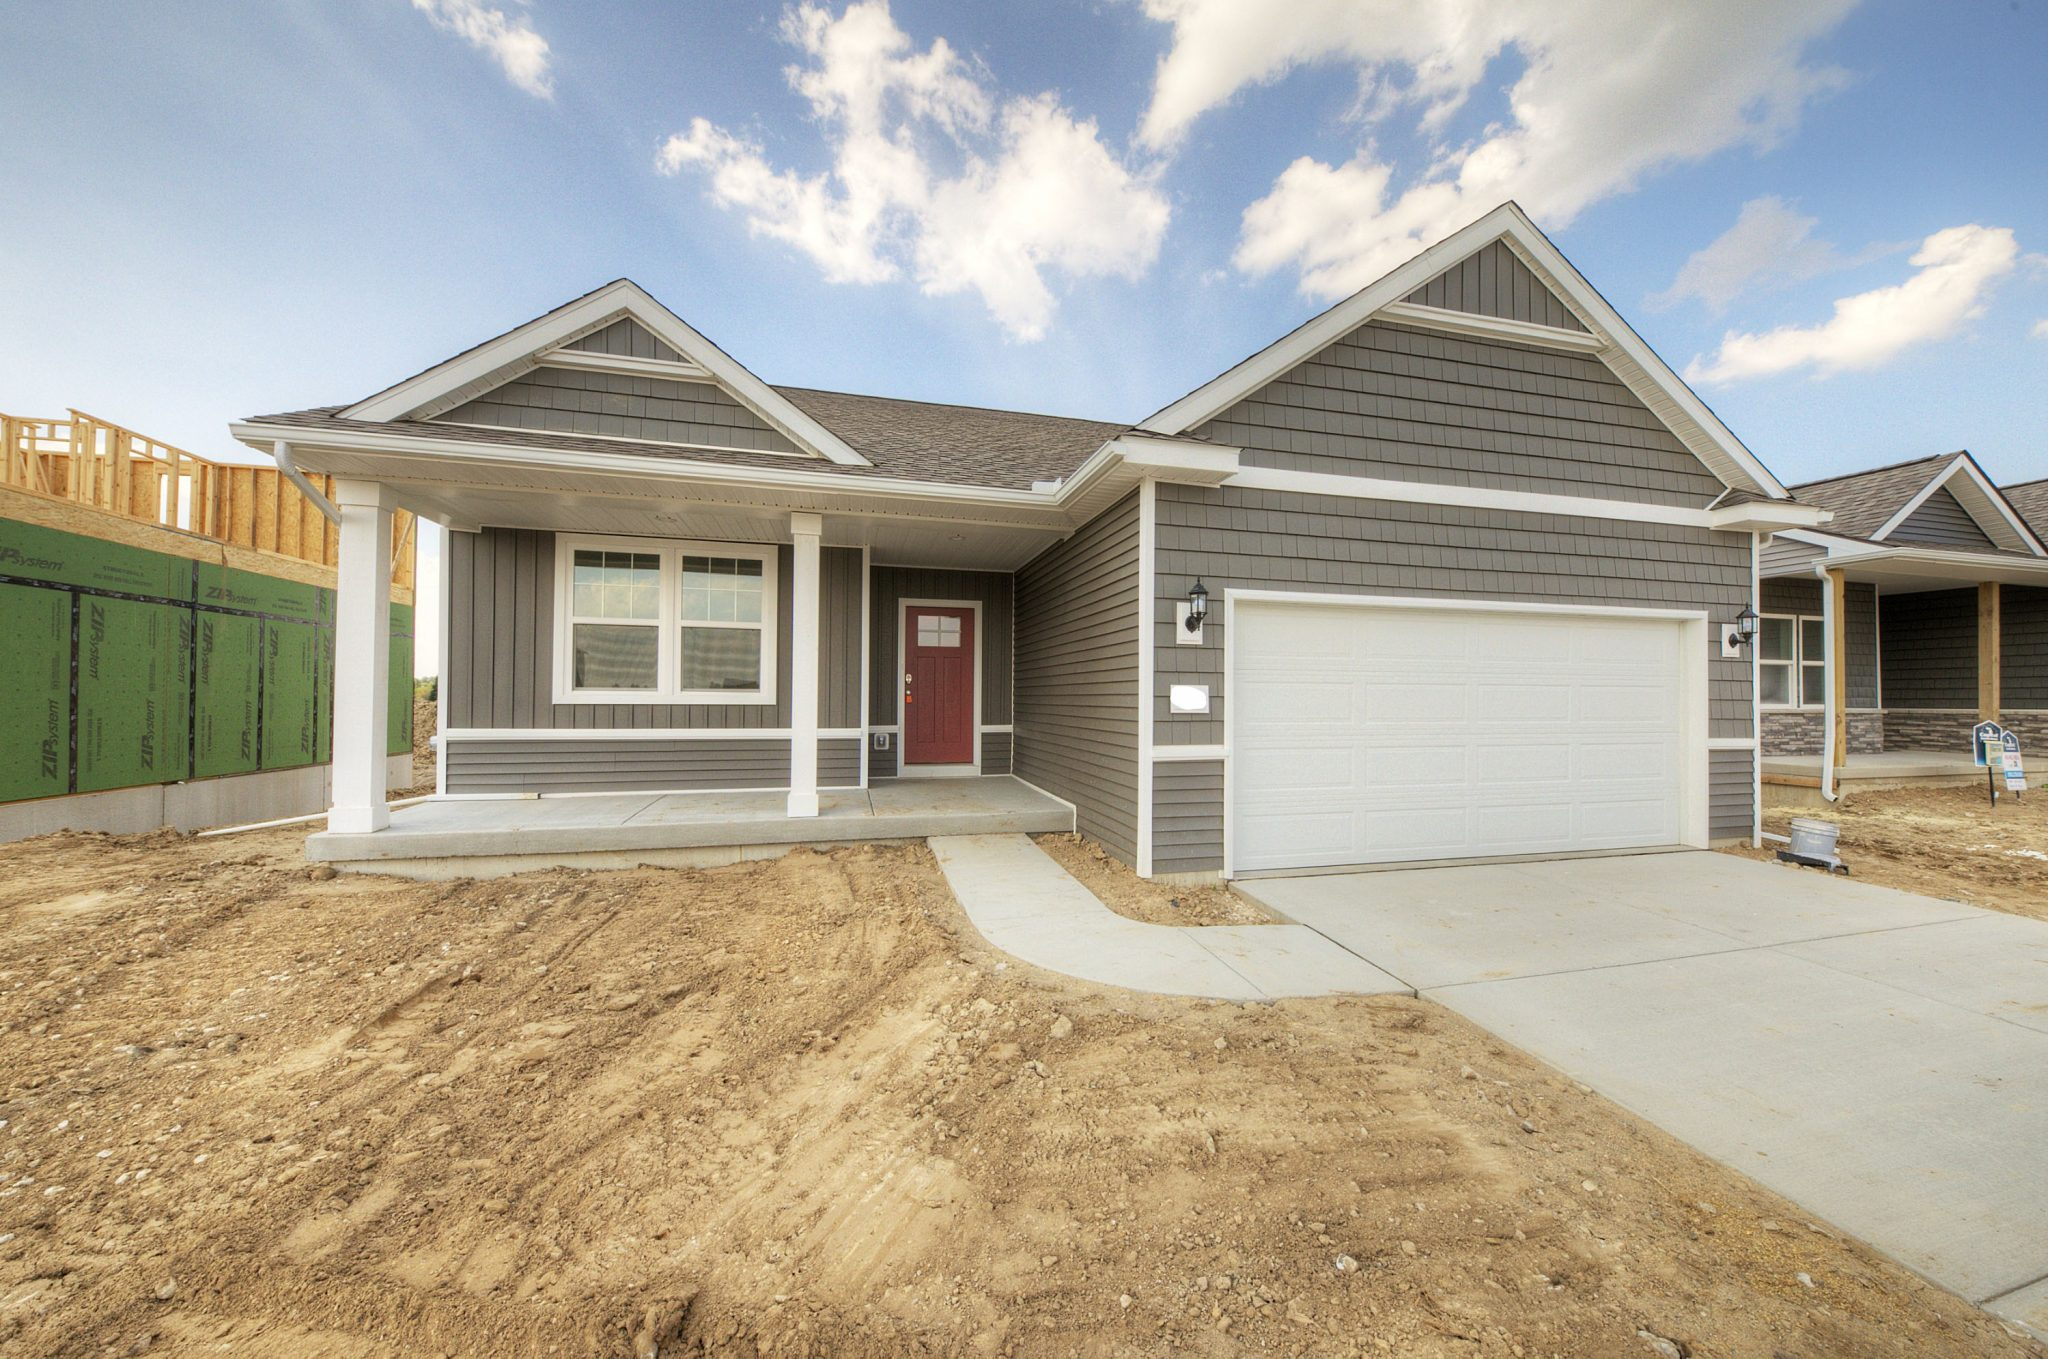 2064 Blackstone Lane, Dells Homesite 9